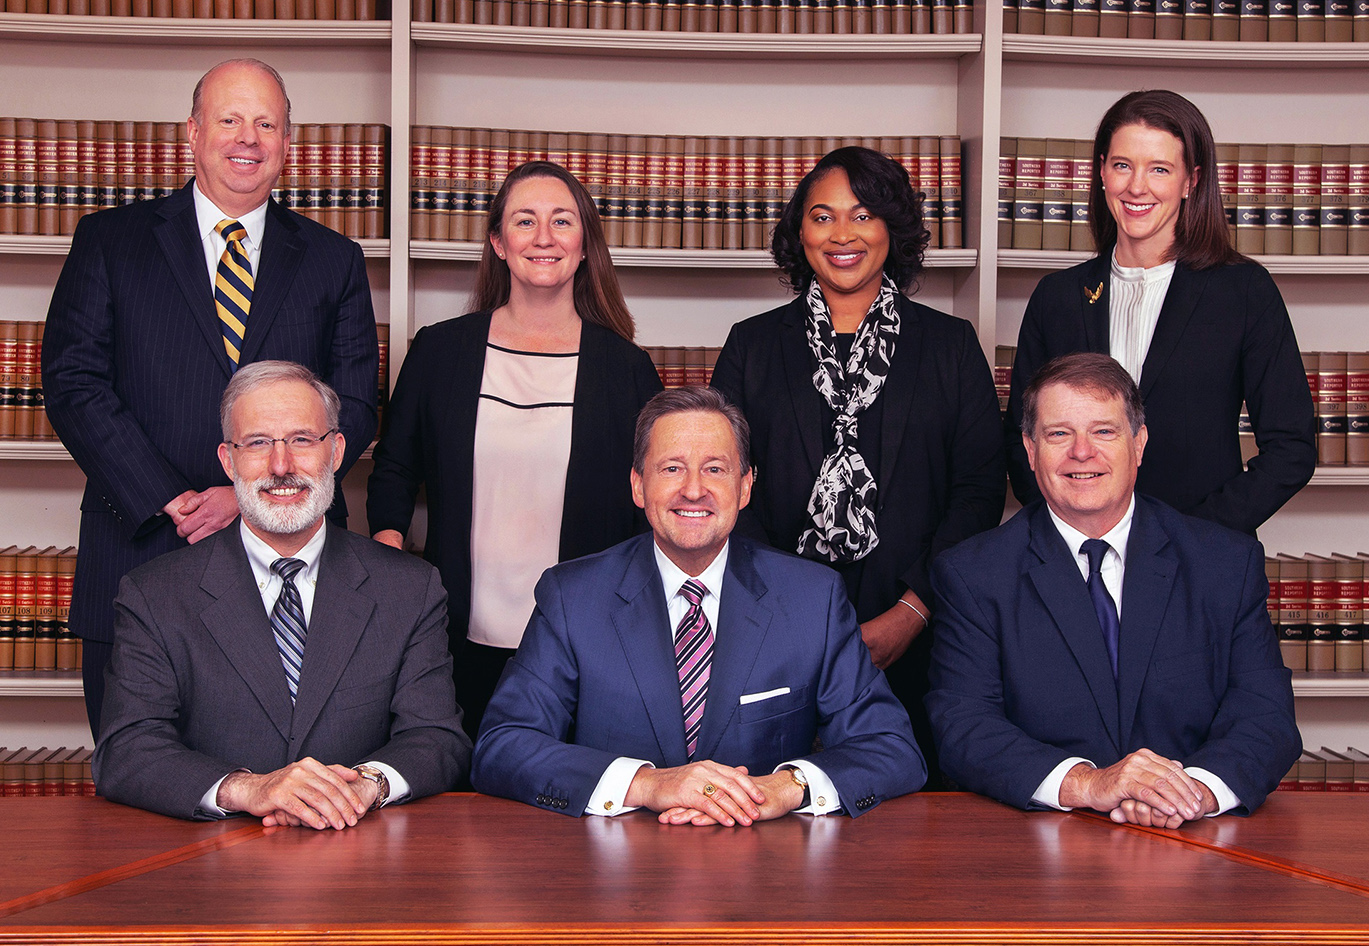 Picture of the Court of Chancery Chancellor and the six Vice Chancellors